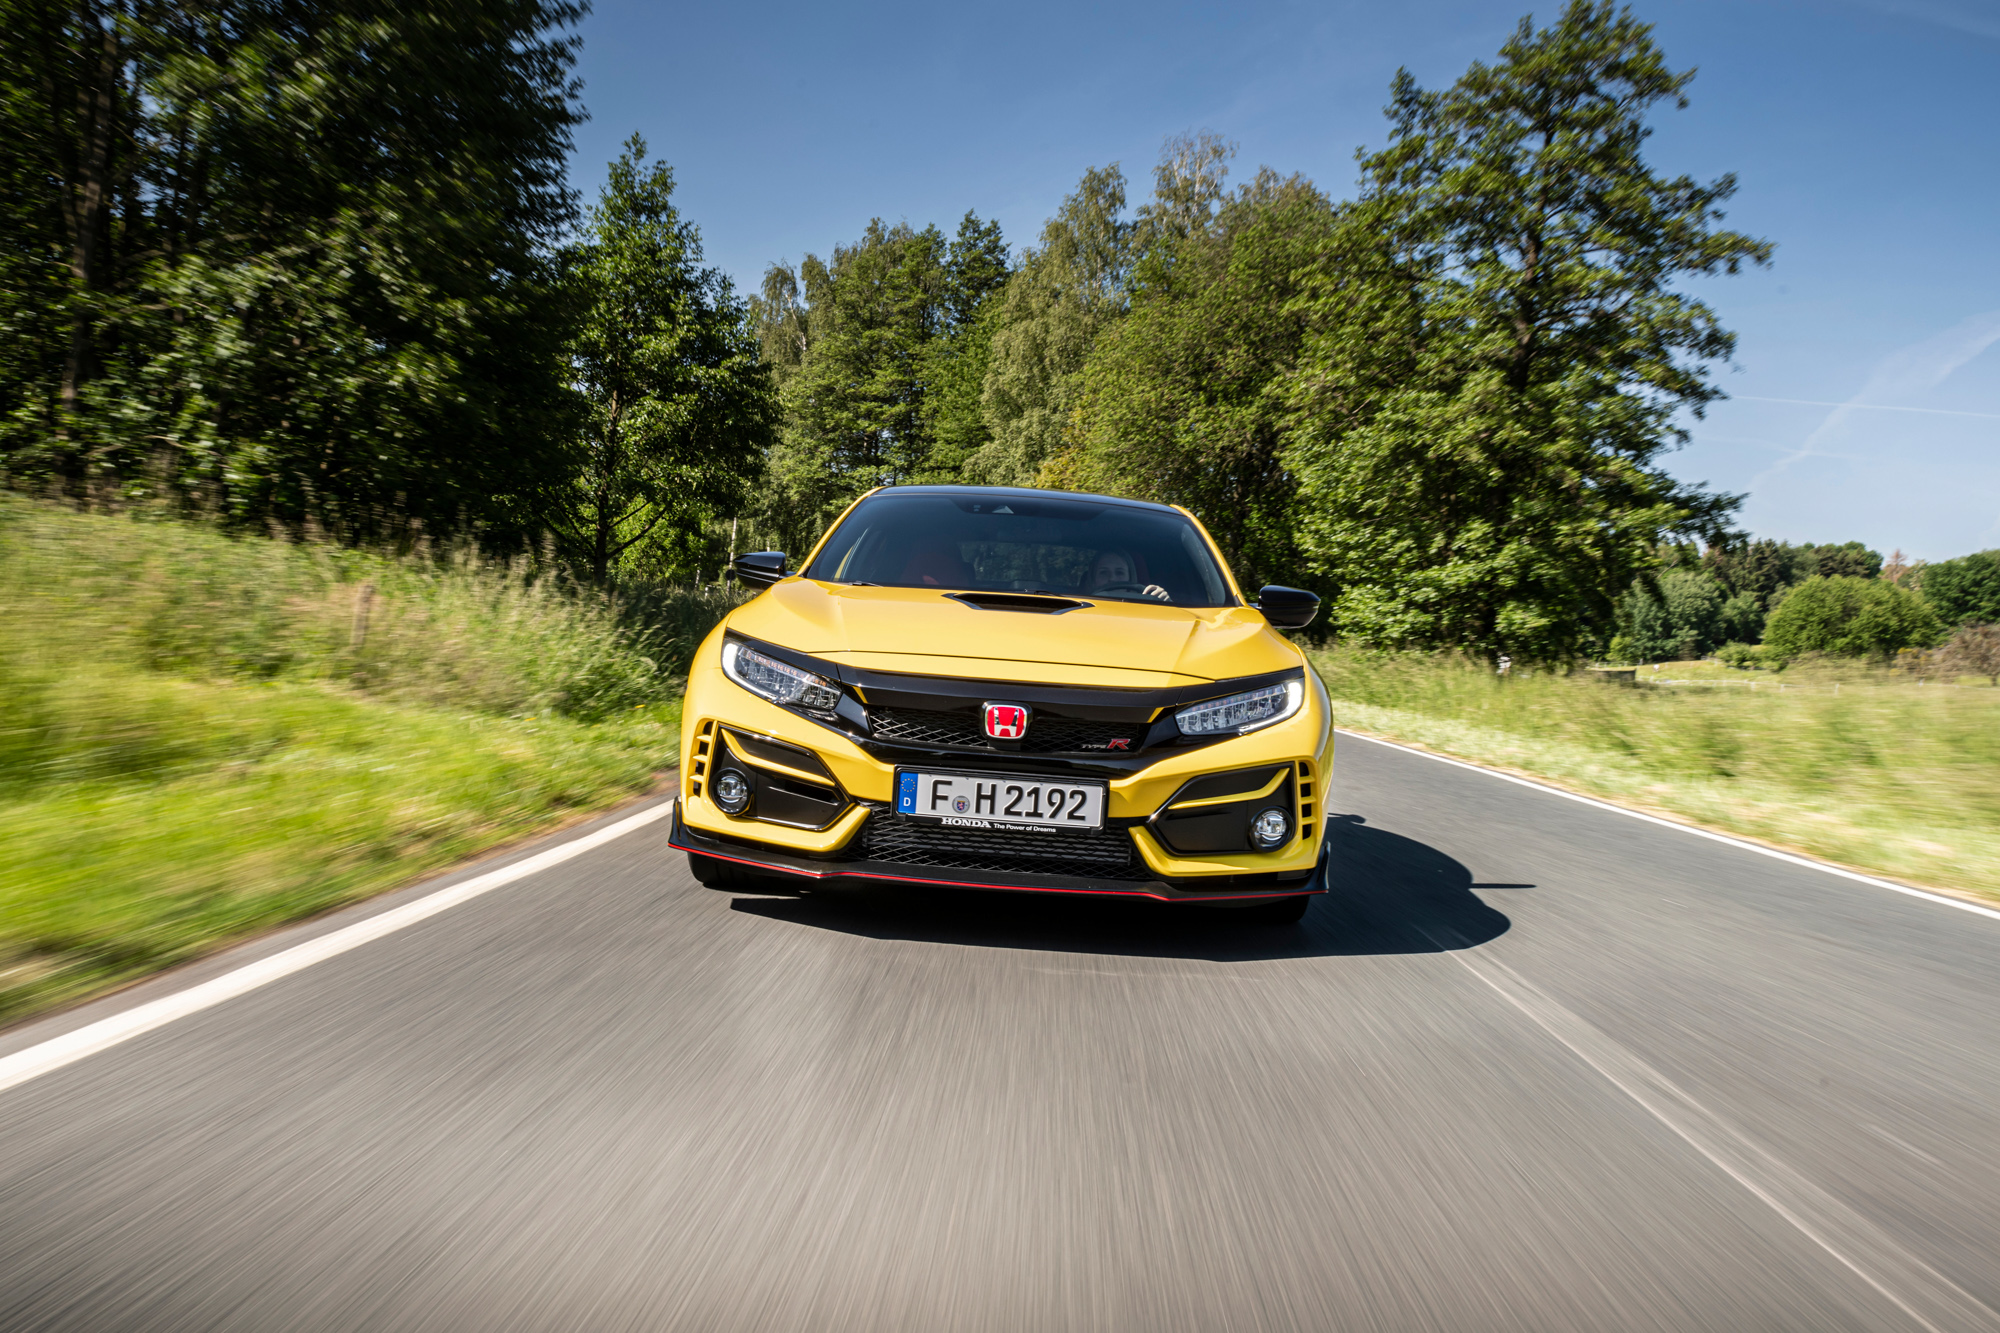 hondacivictyper2021limited-cafeautovn-4